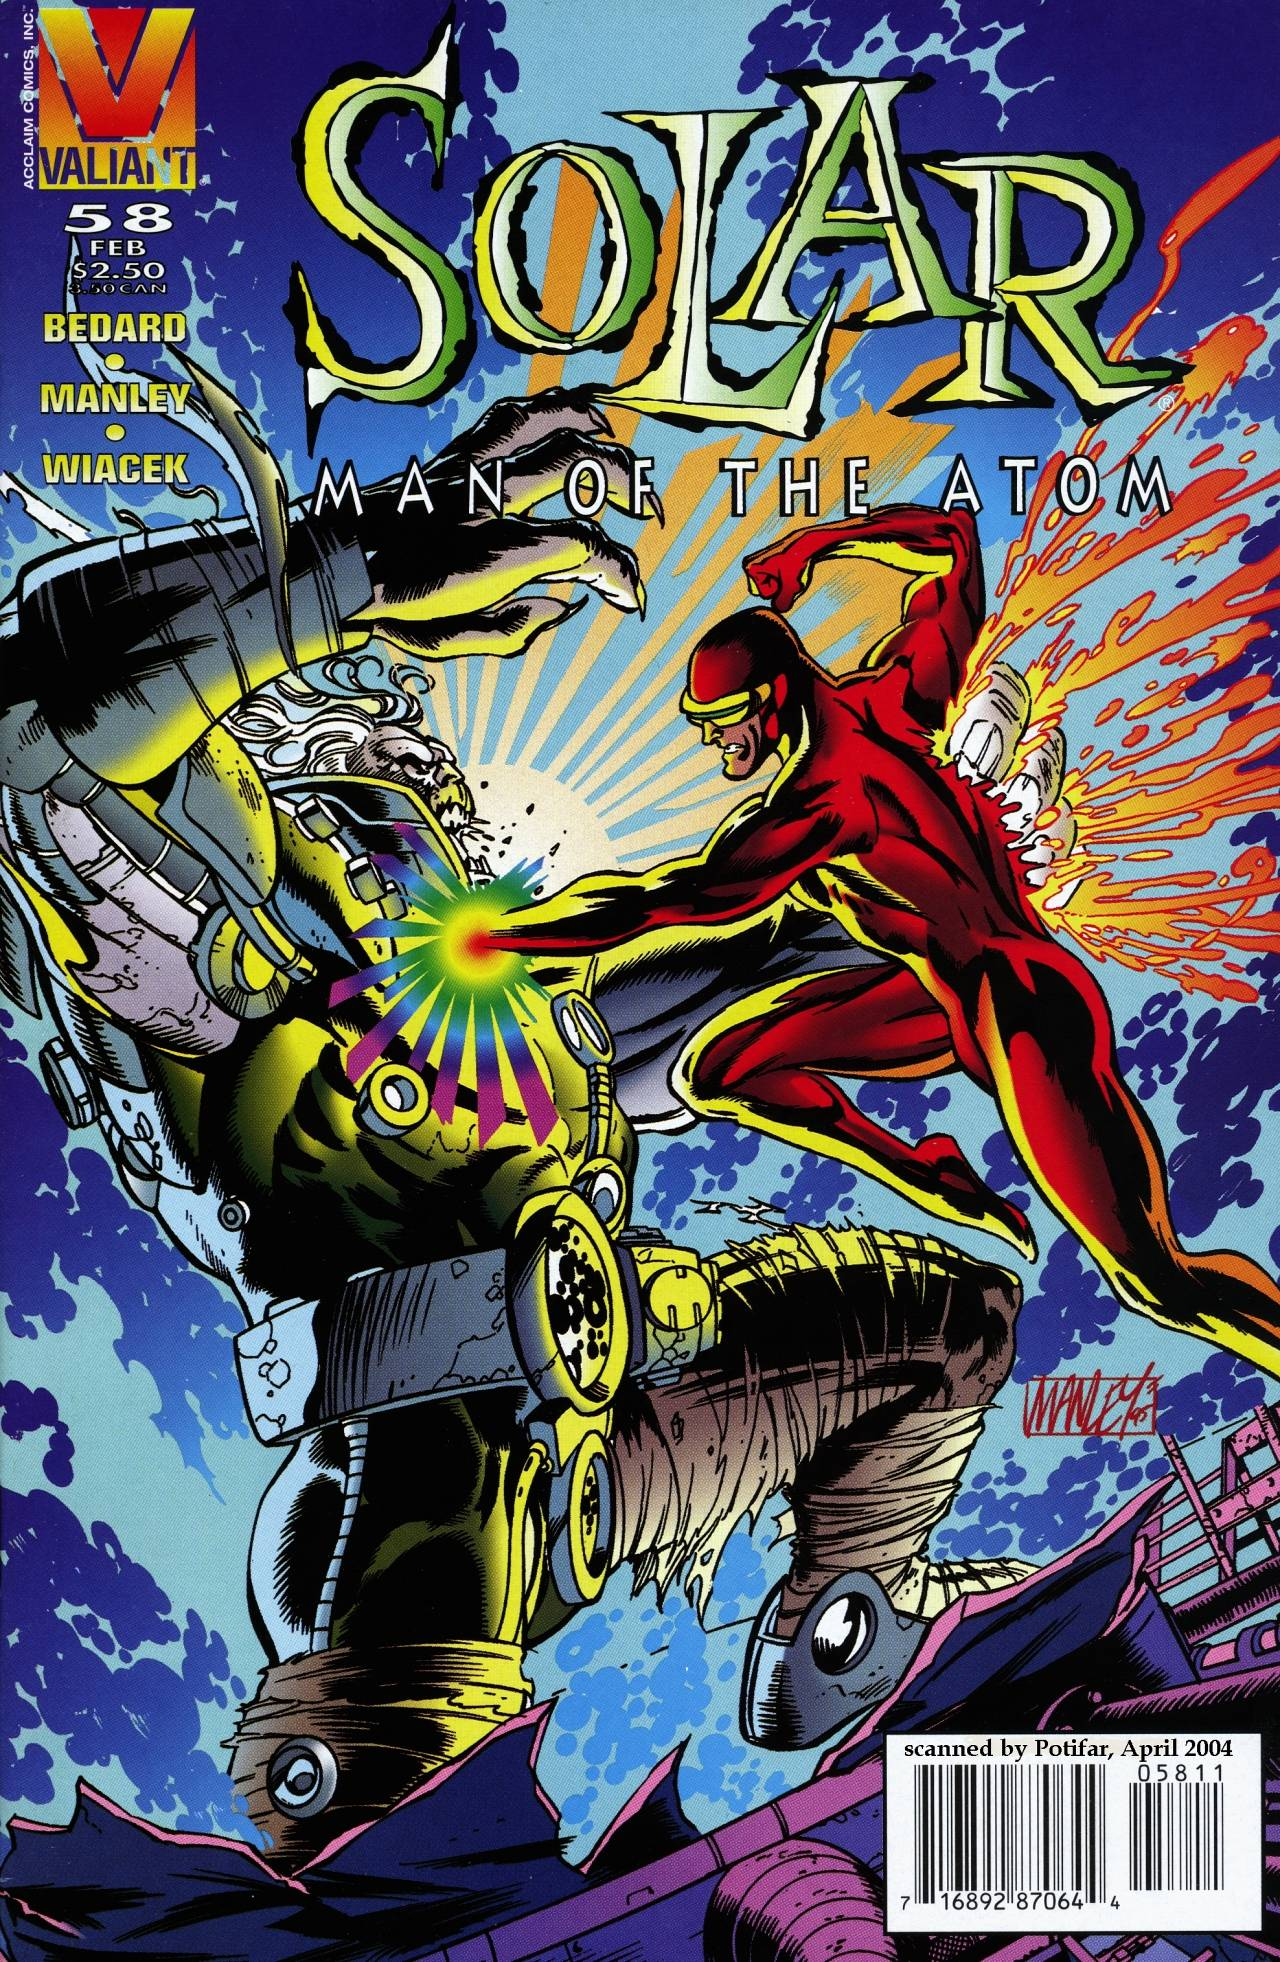 Read online Solar, Man of the Atom comic -  Issue #58 - 1